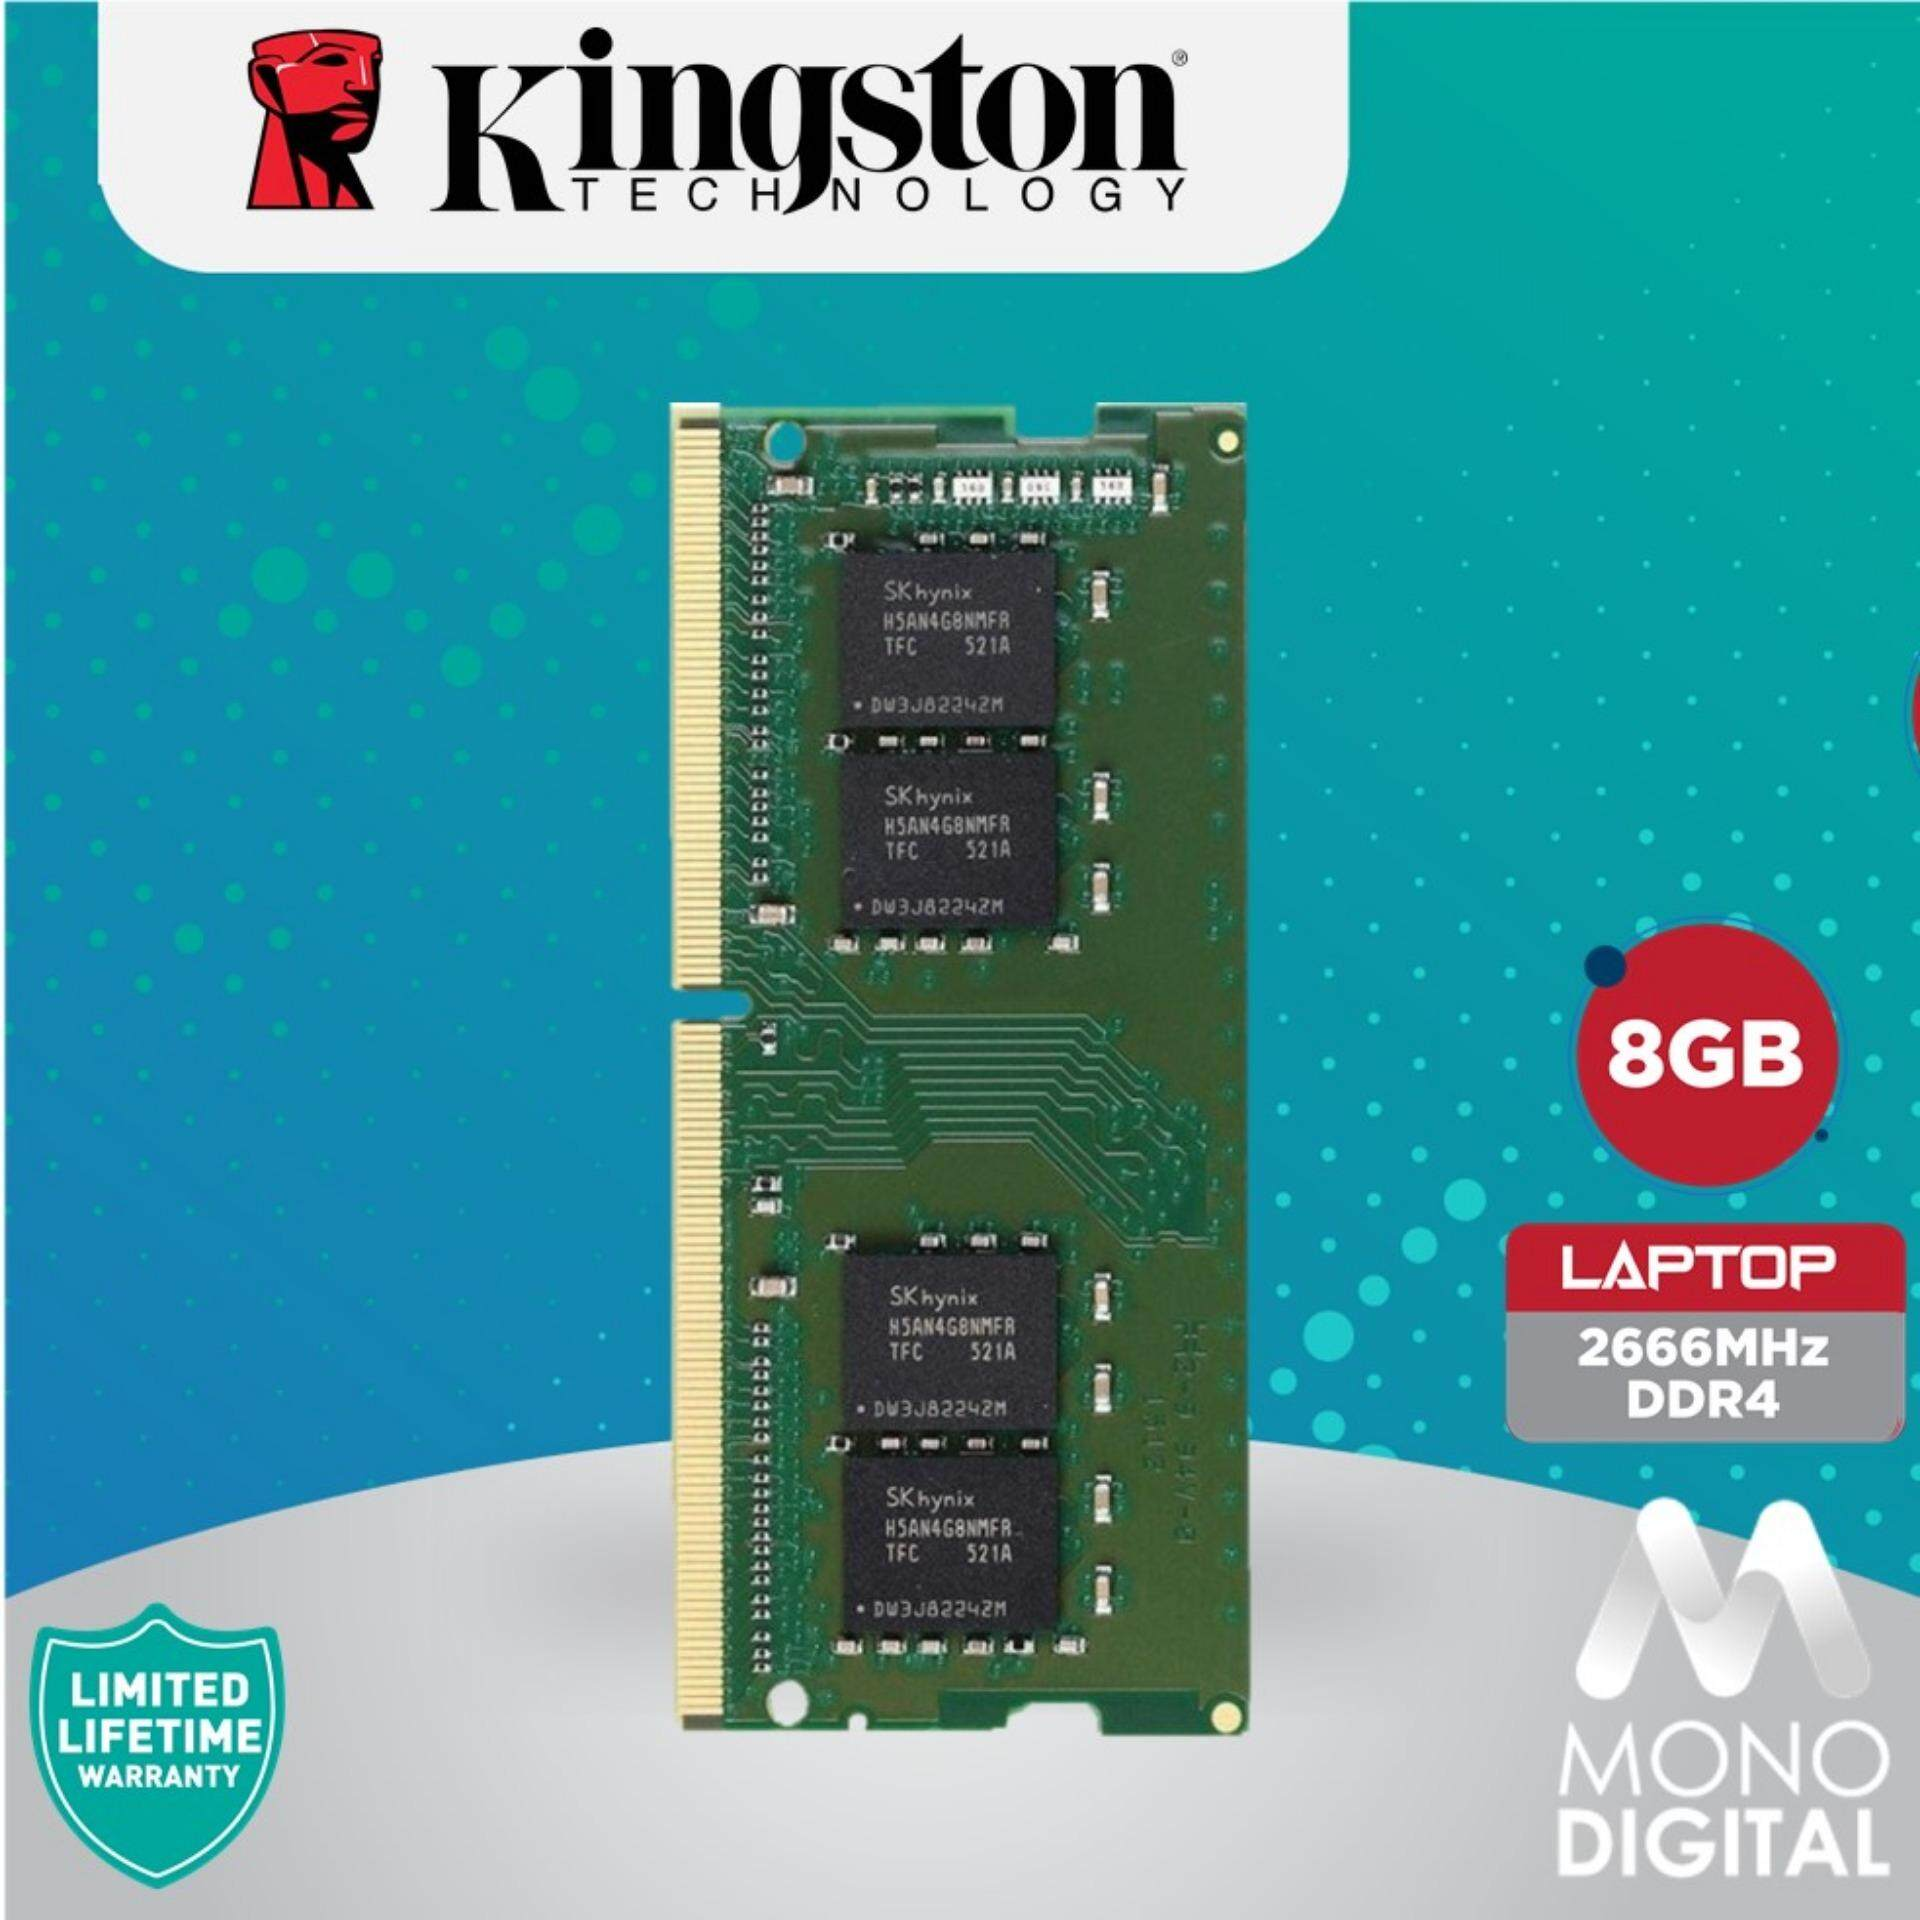 Kingston ValueRAM 8GB RAM DDR4 2666Mhz PC4 2666 SODIMM Laptop Memory  (KVR26S19S8/8)